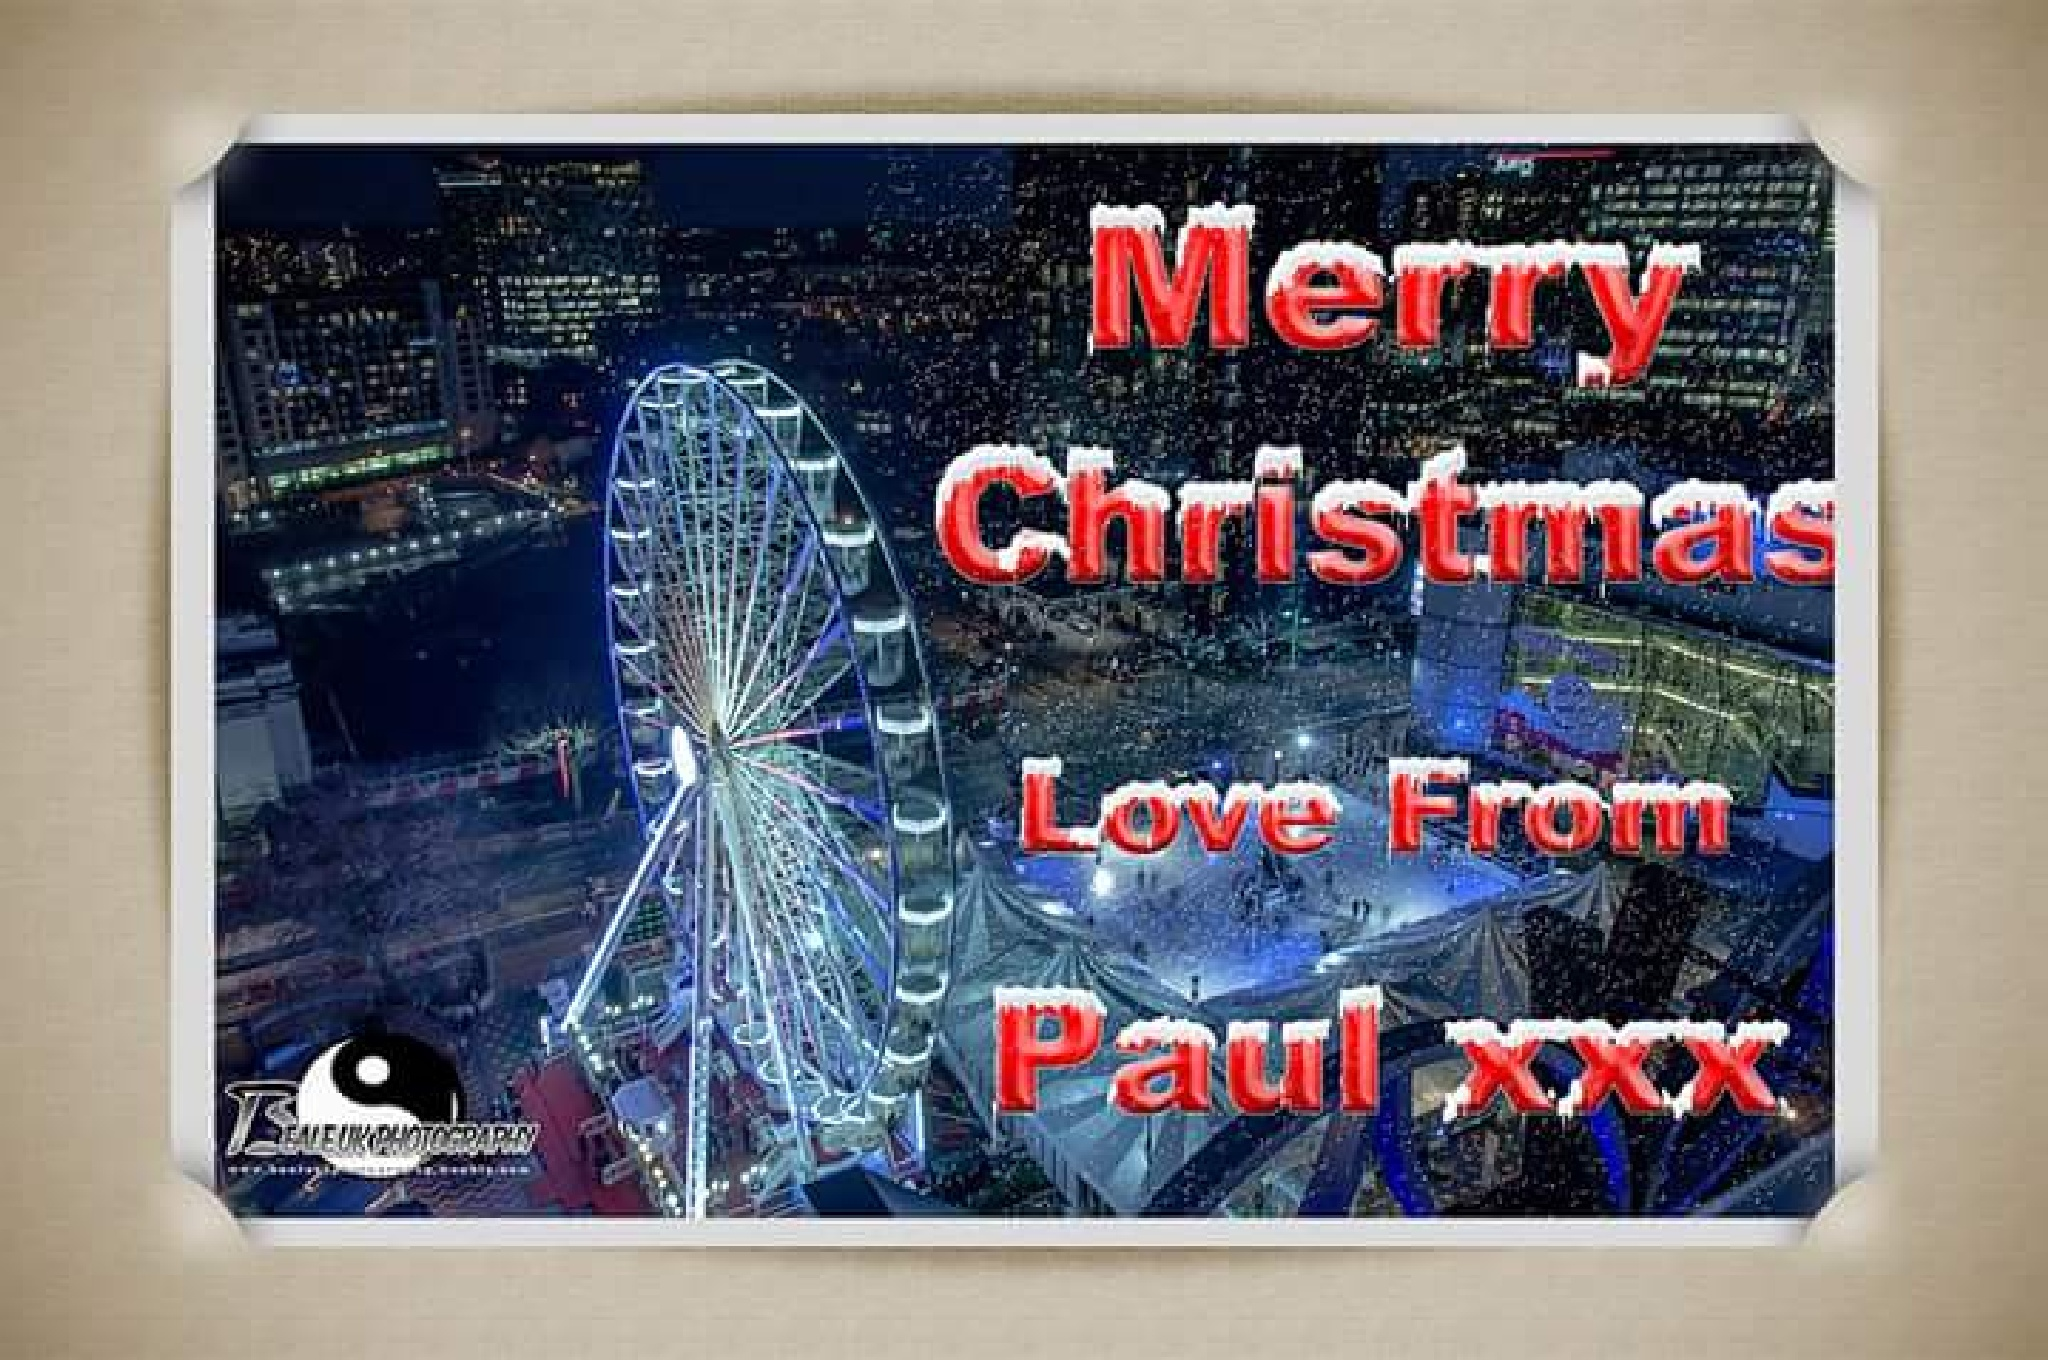 Merry Christmas Everyone xxx by Paul Beale LRPS